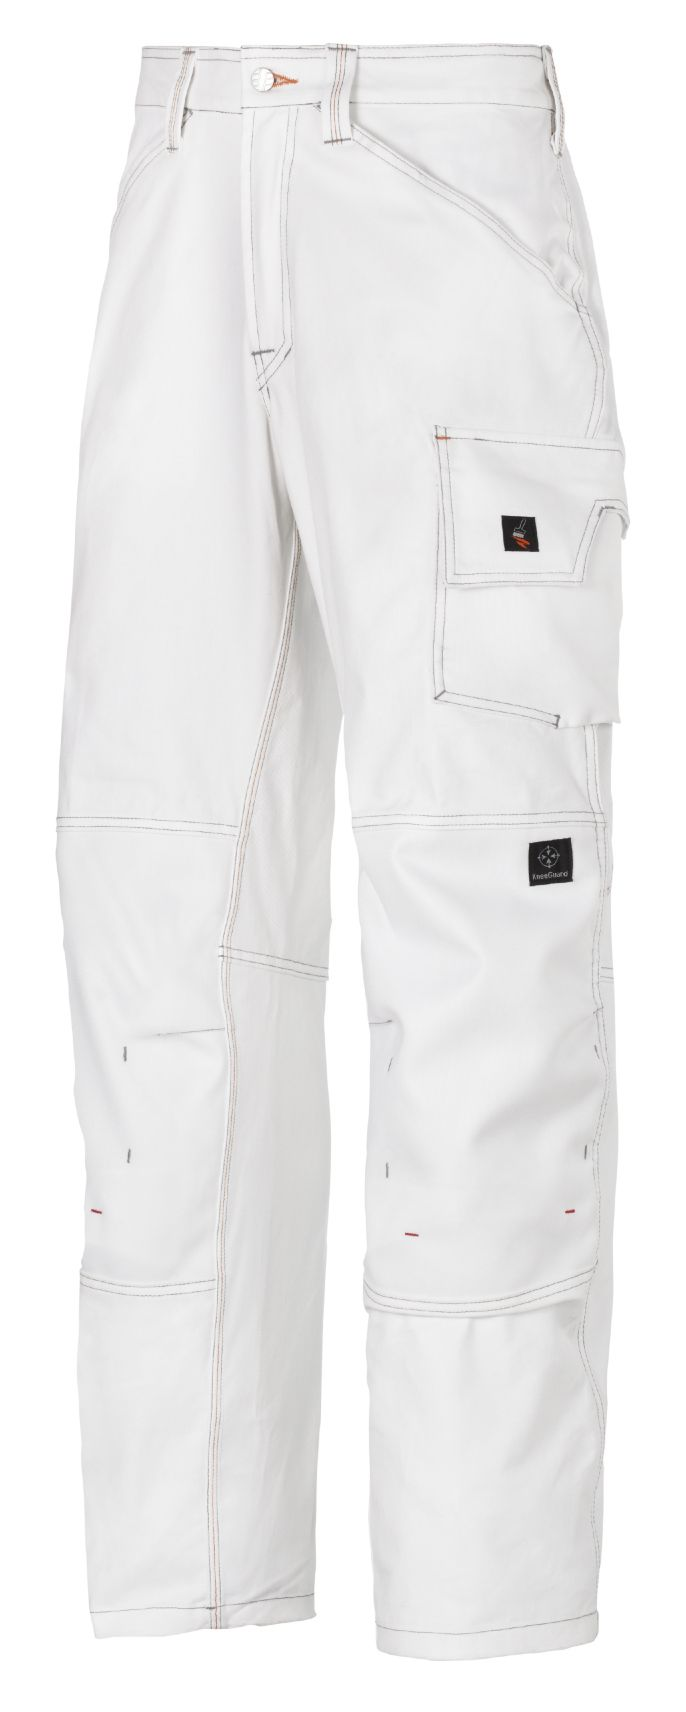 3375 SNICKERS PAINTERS BASIC TROUSERS